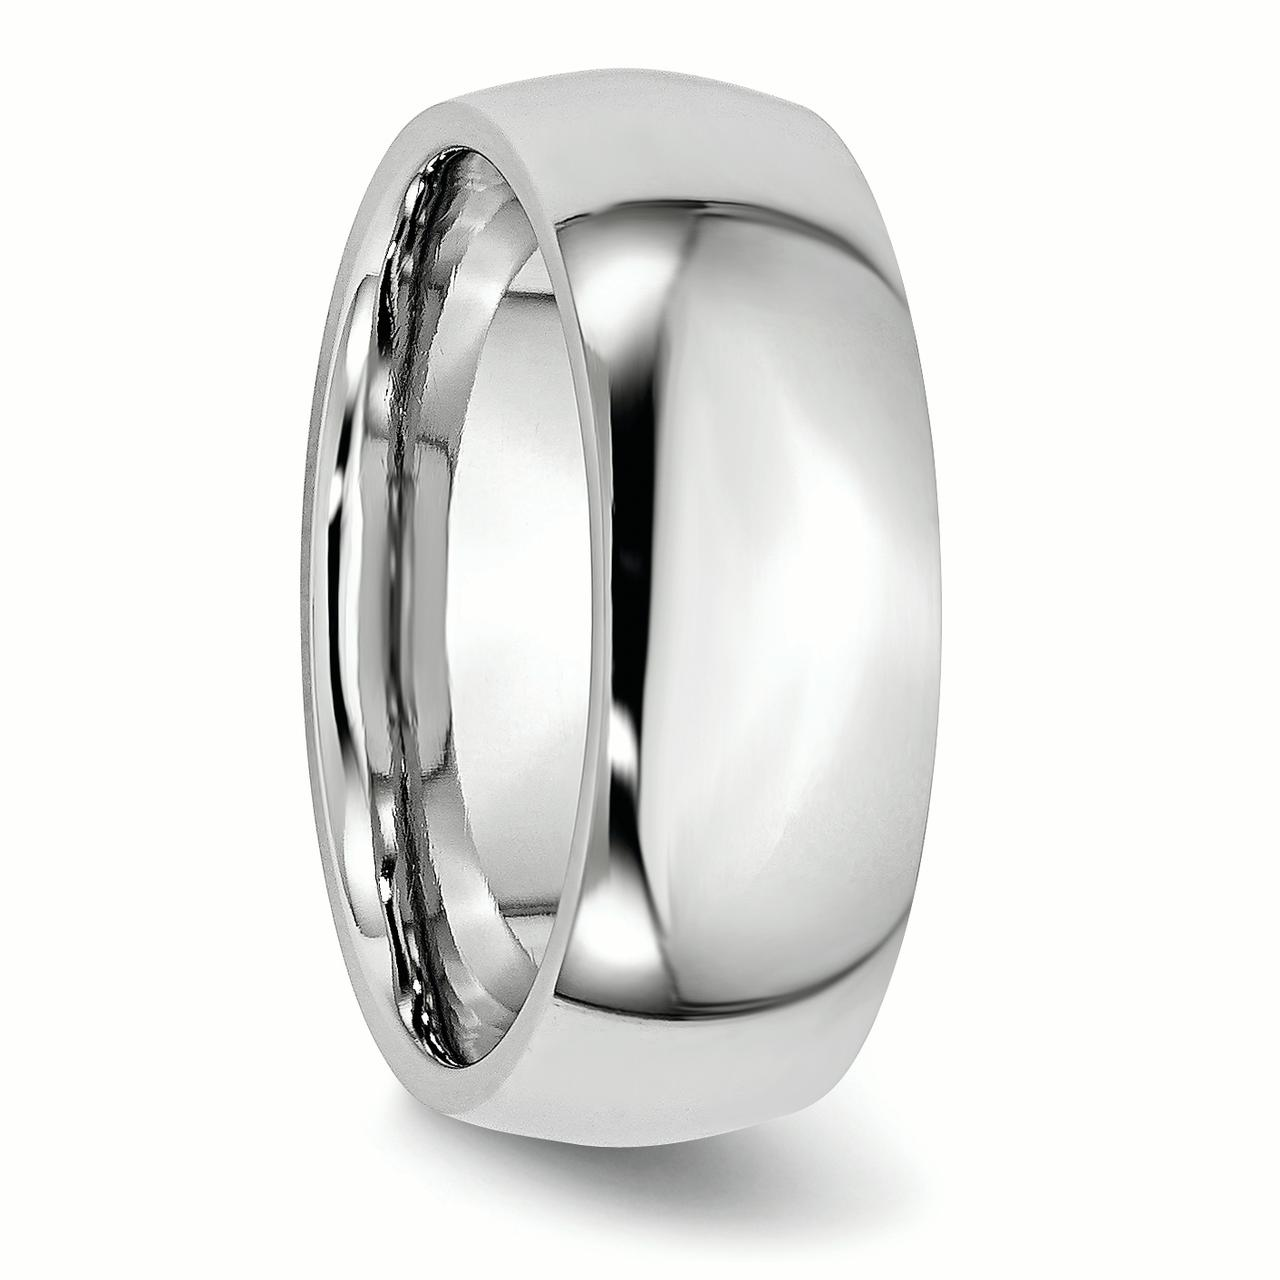 Cobalt 8mm Wedding Ring Band Size 10.50 Classic Domed Fashion Jewelry Gifts For Women For Her - image 4 de 6